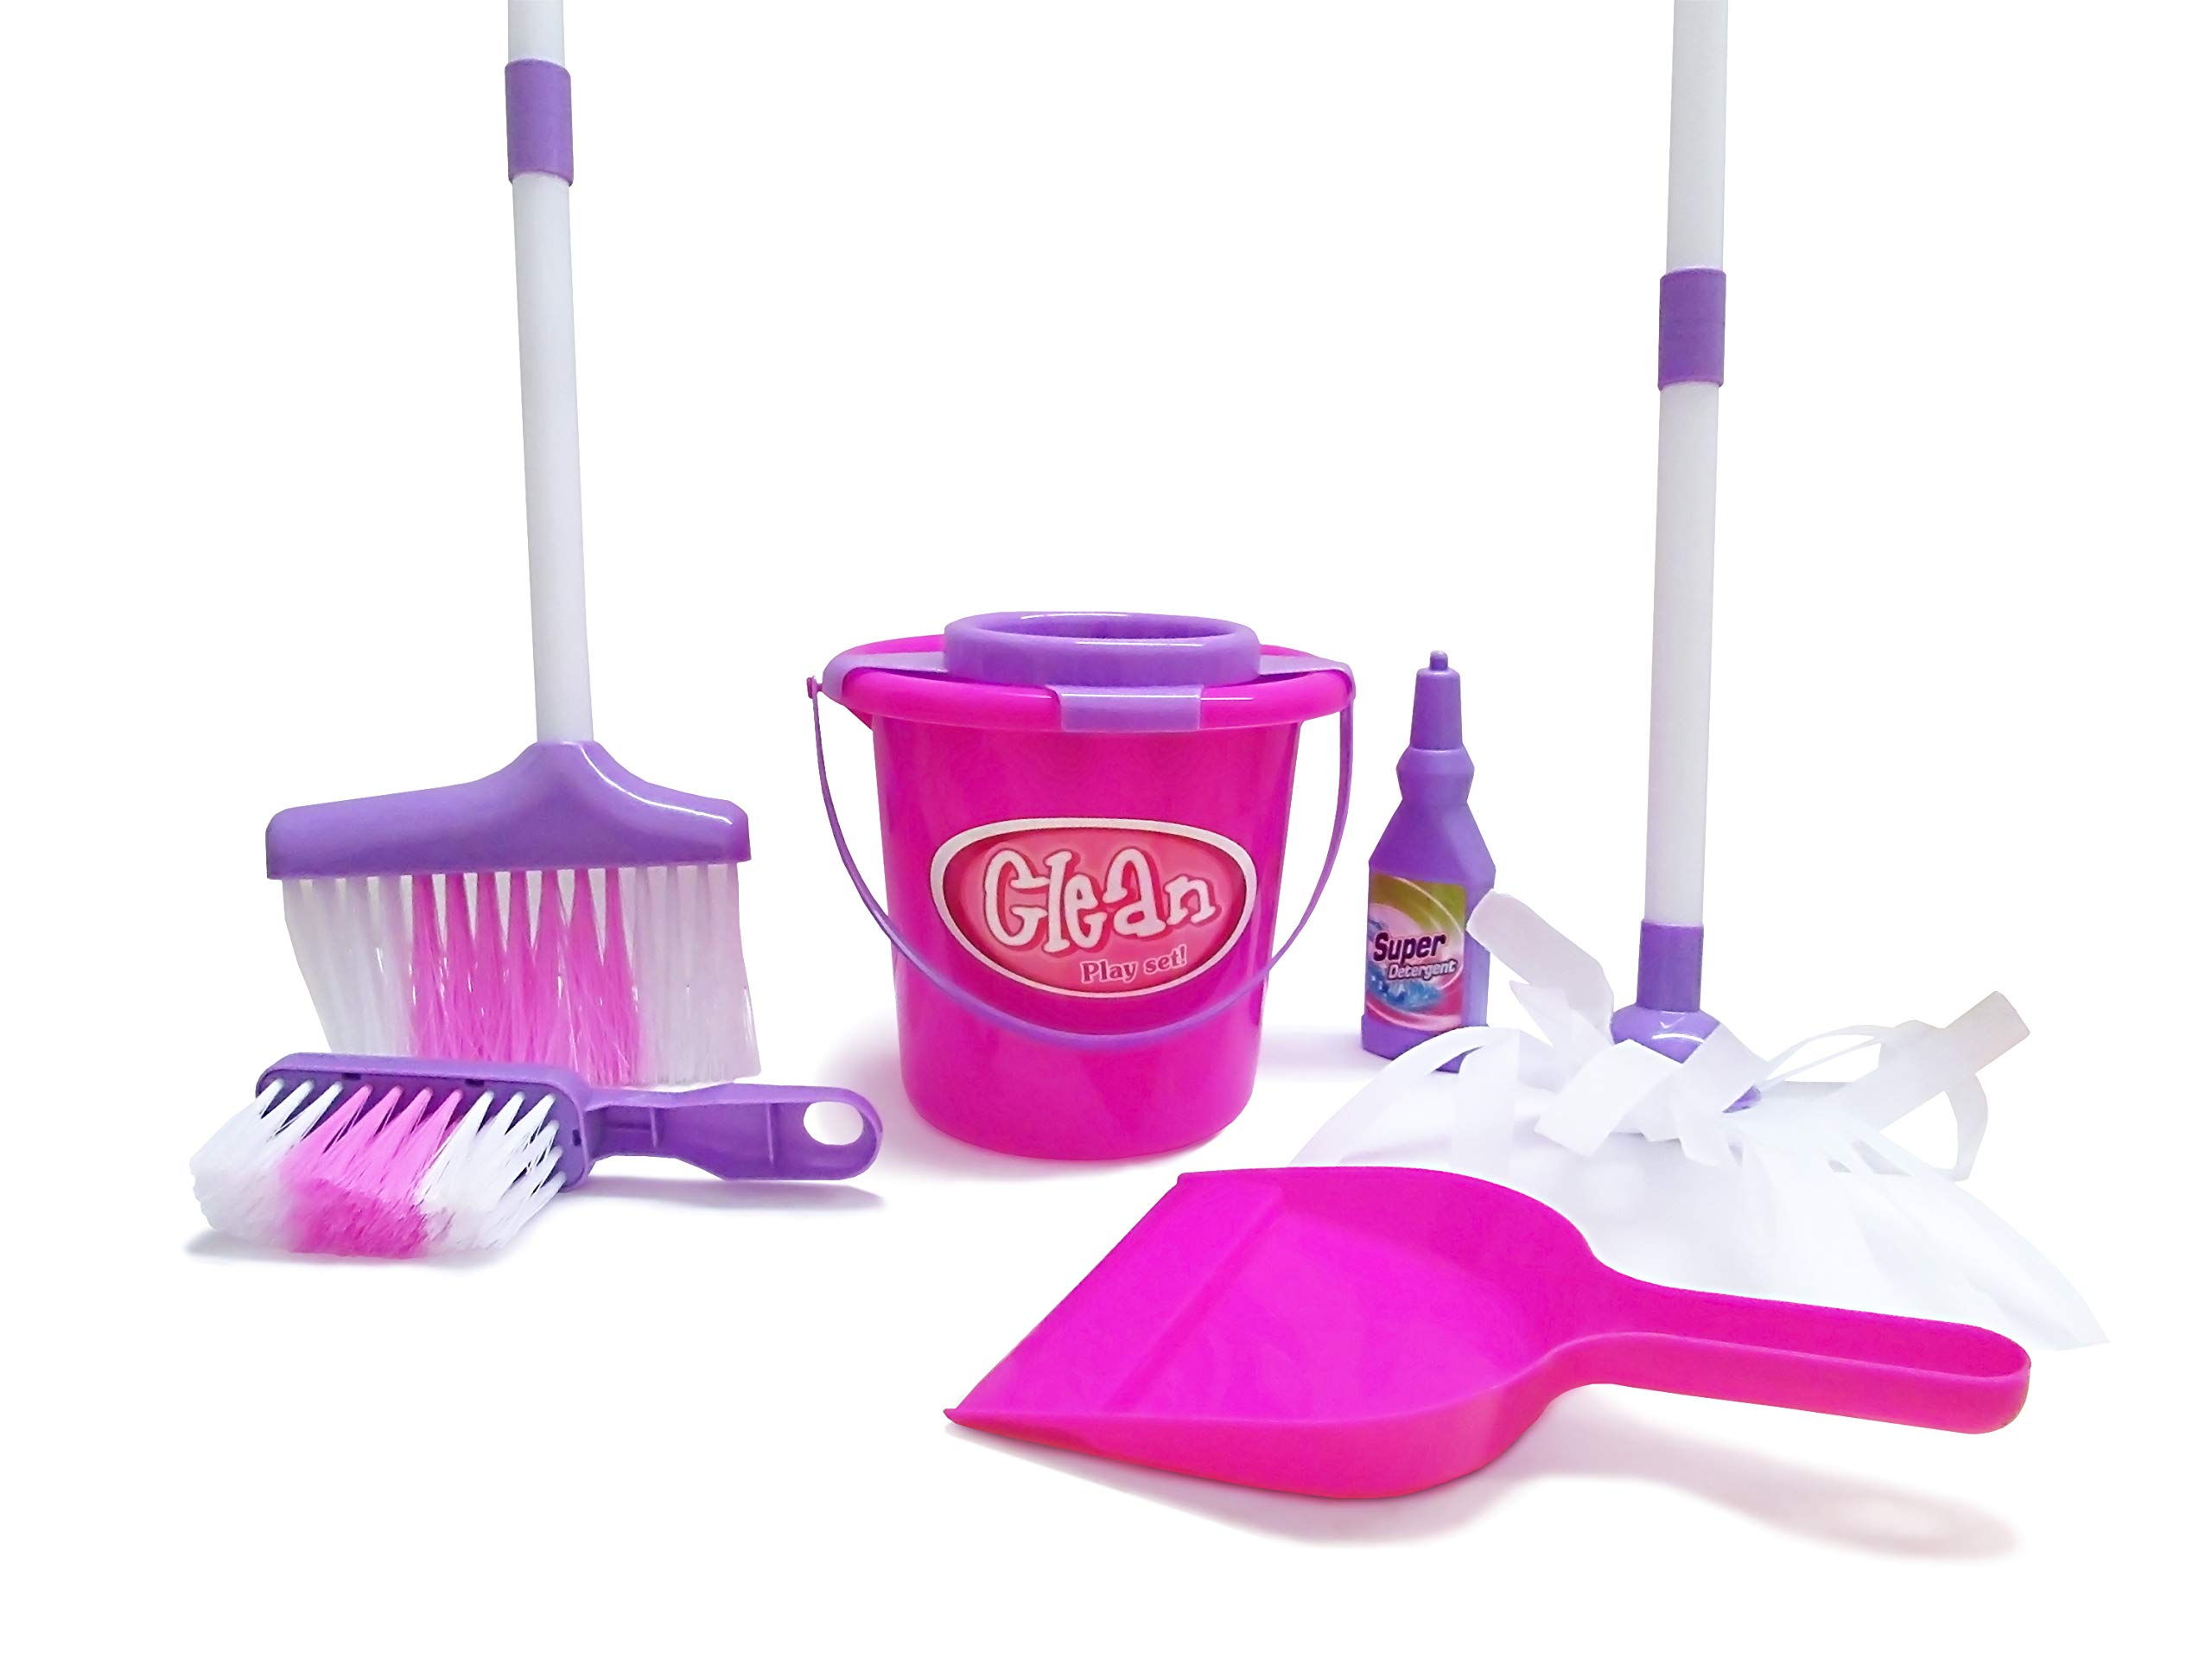 Dazzling Toys Little Girls Just Like Mom Cleaning Set. Set Includes Broom, Dust Brush, Pail and More by Dazzling Toys